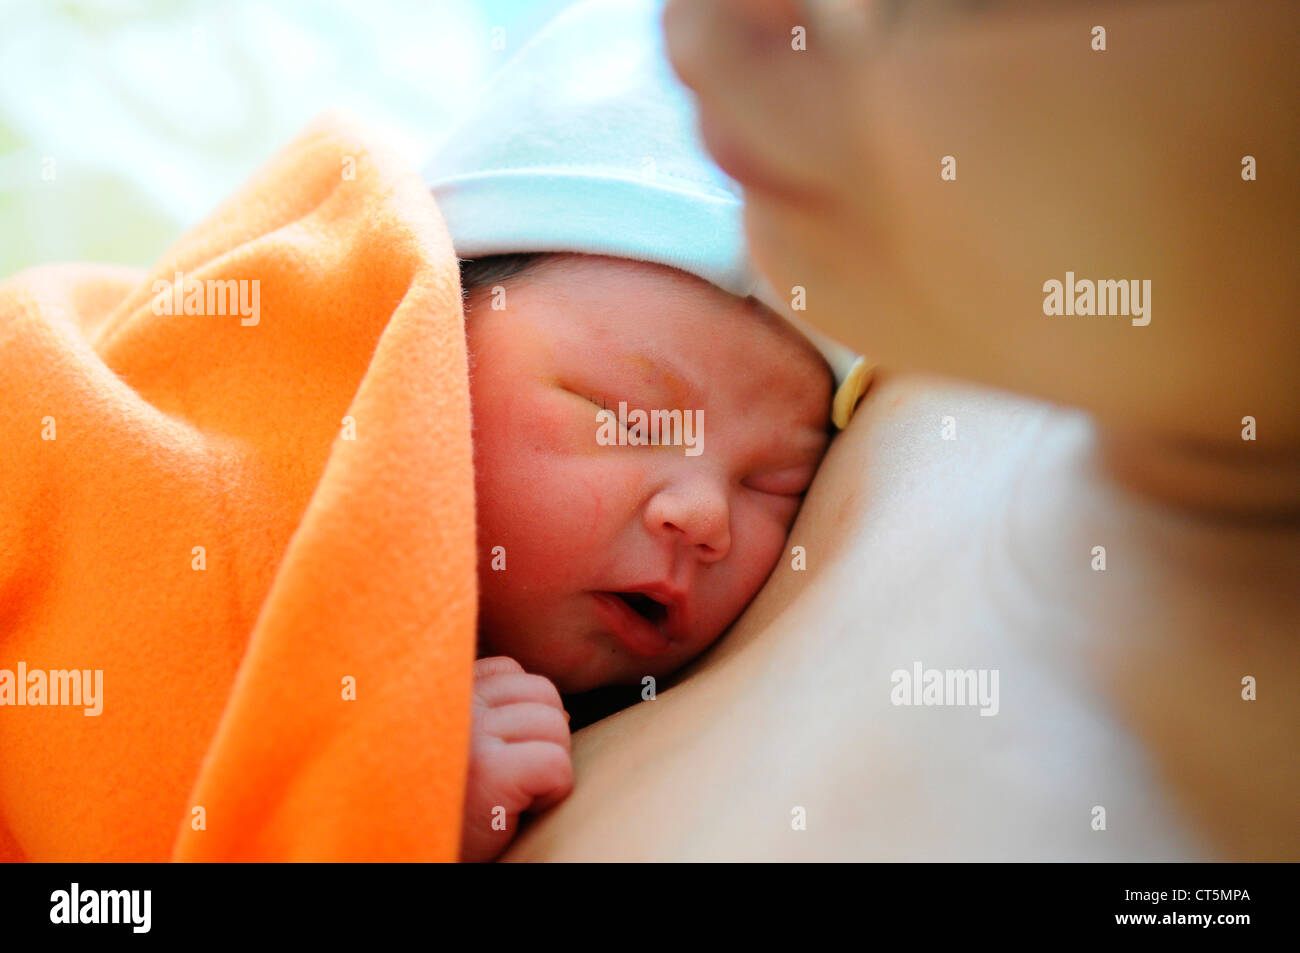 MOTHER AND NEWBORN BABY - Stock Image